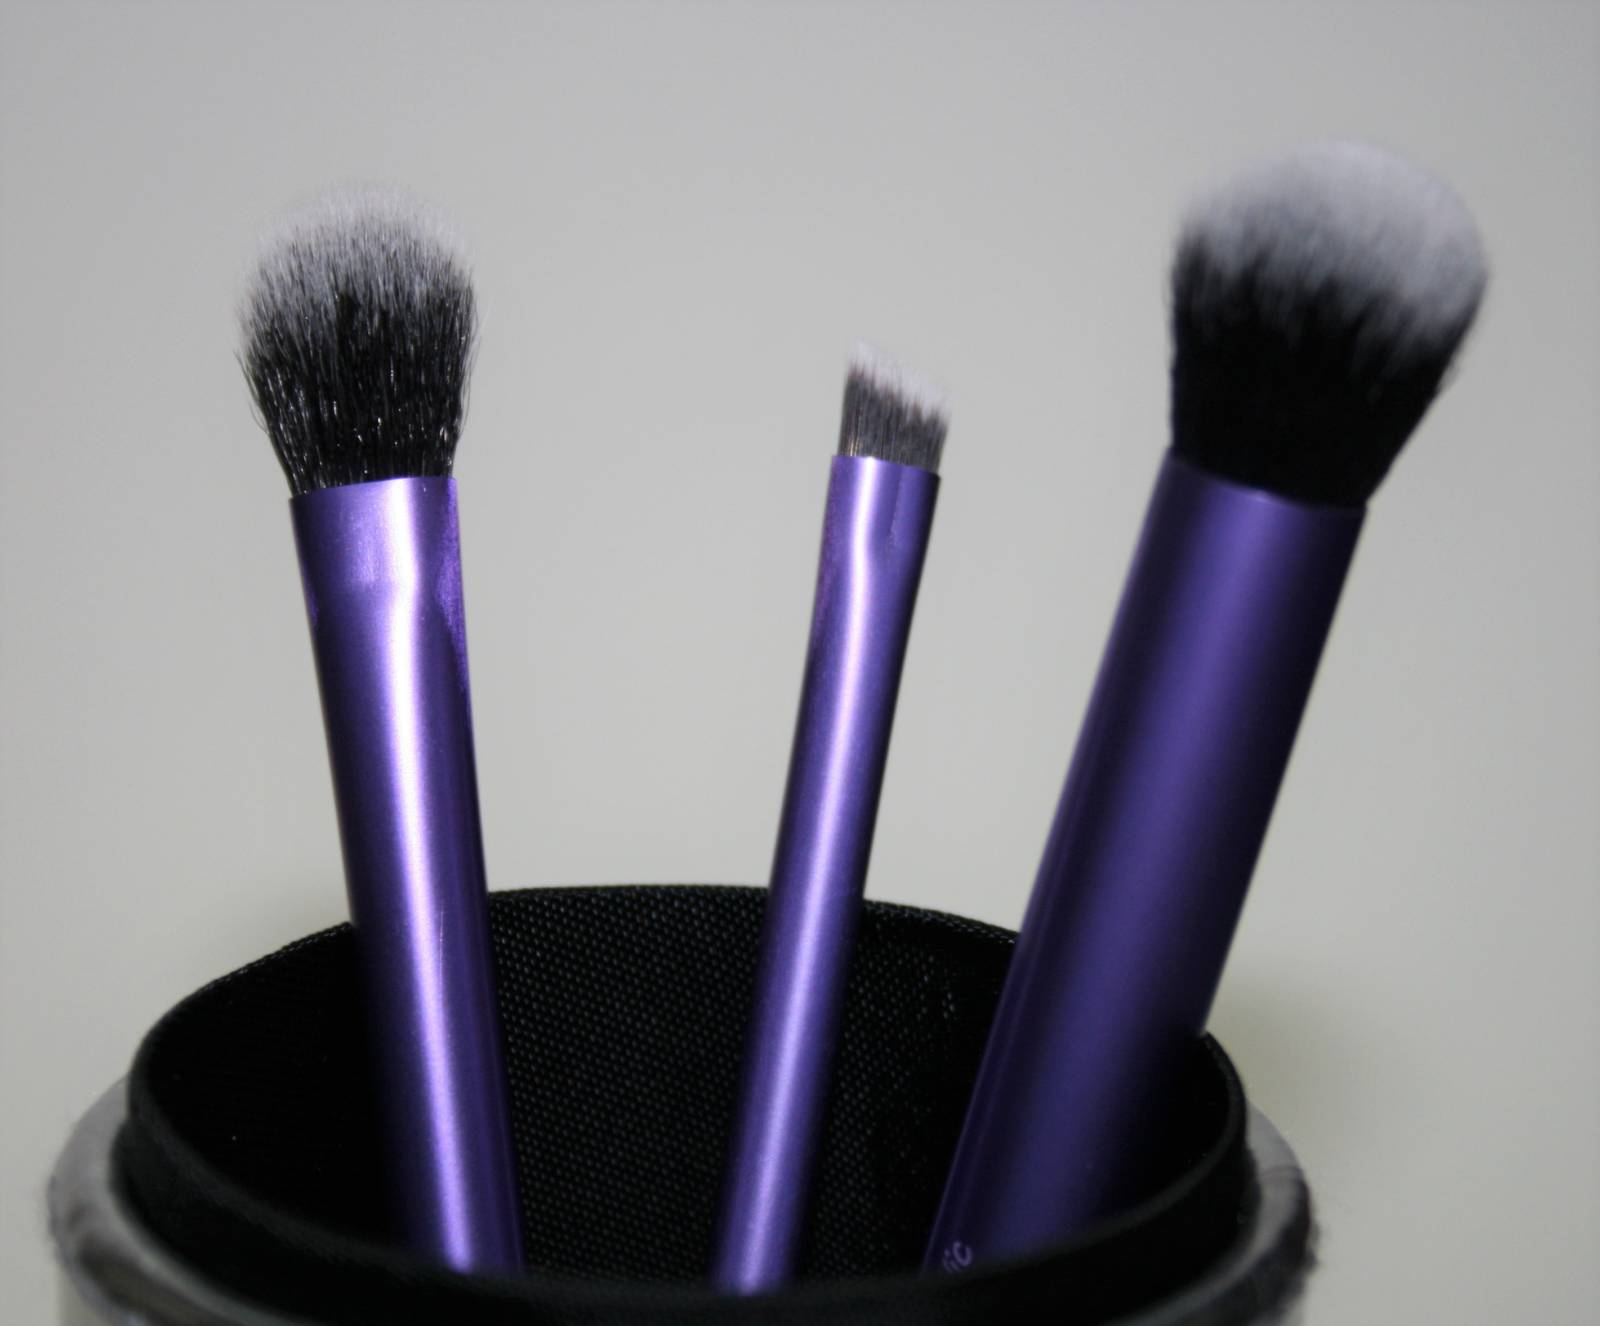 Brushes & Tools. NEW Heavenly Luxe Beautiful Basics Makeup Brush Set and Case ($80 value) it's your brush therapy! $ Rating of 5 (0) NEW Travel With IT Makeup Brush and Cosmetics Case it's your double-duty beauty accessory! $ Rating of 5 (0) NEW.